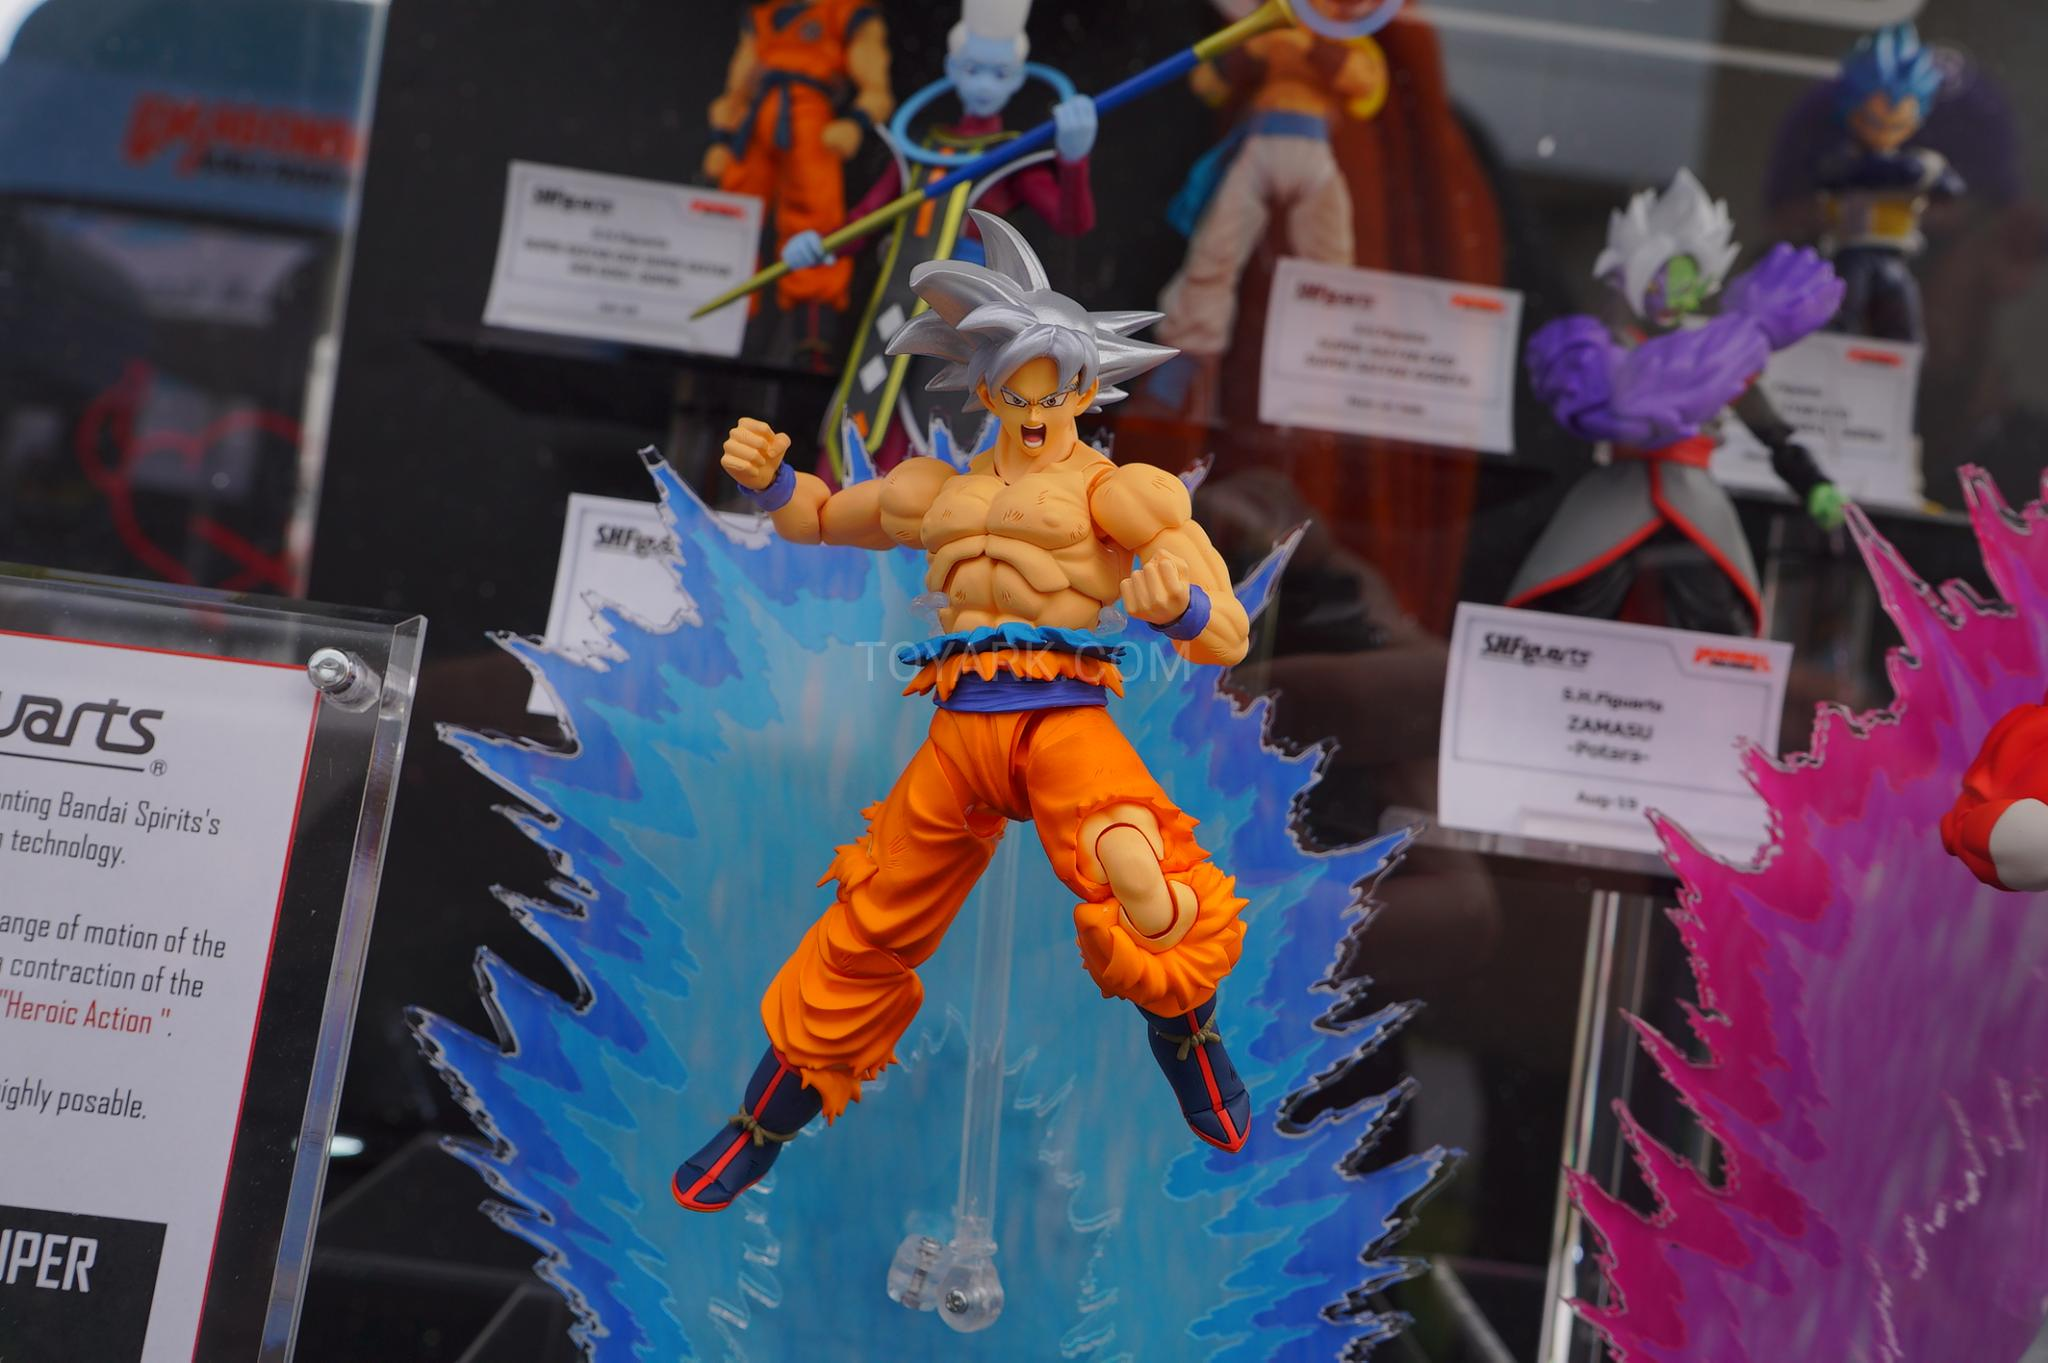 Goku - Figuarts Super Saiyan God Super Saiyan SSB Goku (Review) SDCC-2019-DBZ-World-Event-002